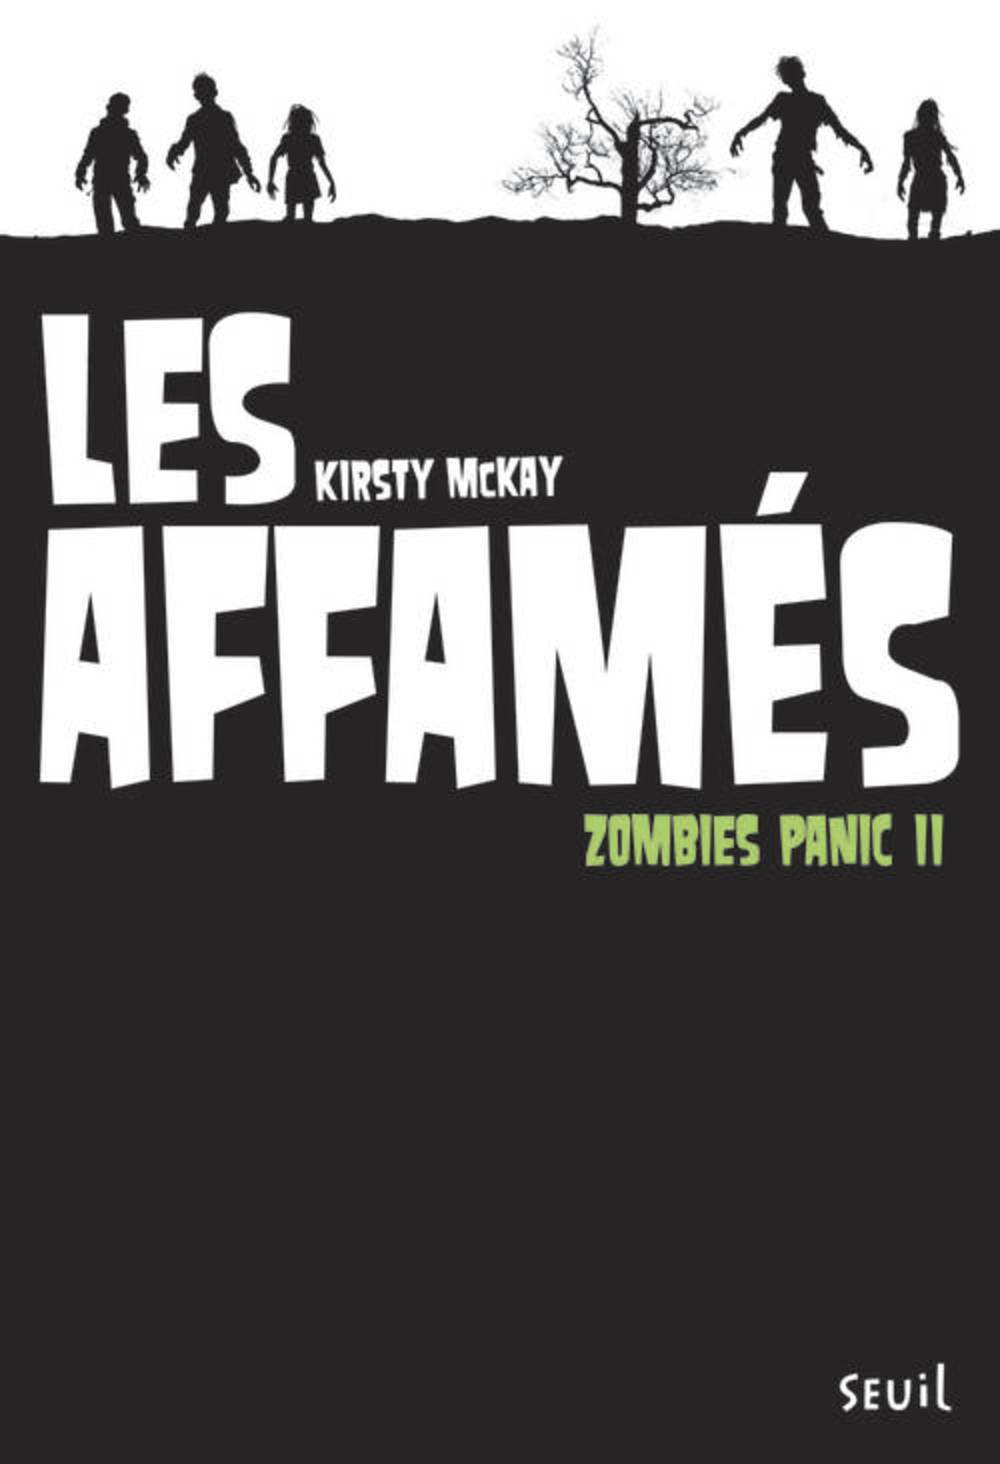 zombie-panic-2-les-affames-kirsty-mckay